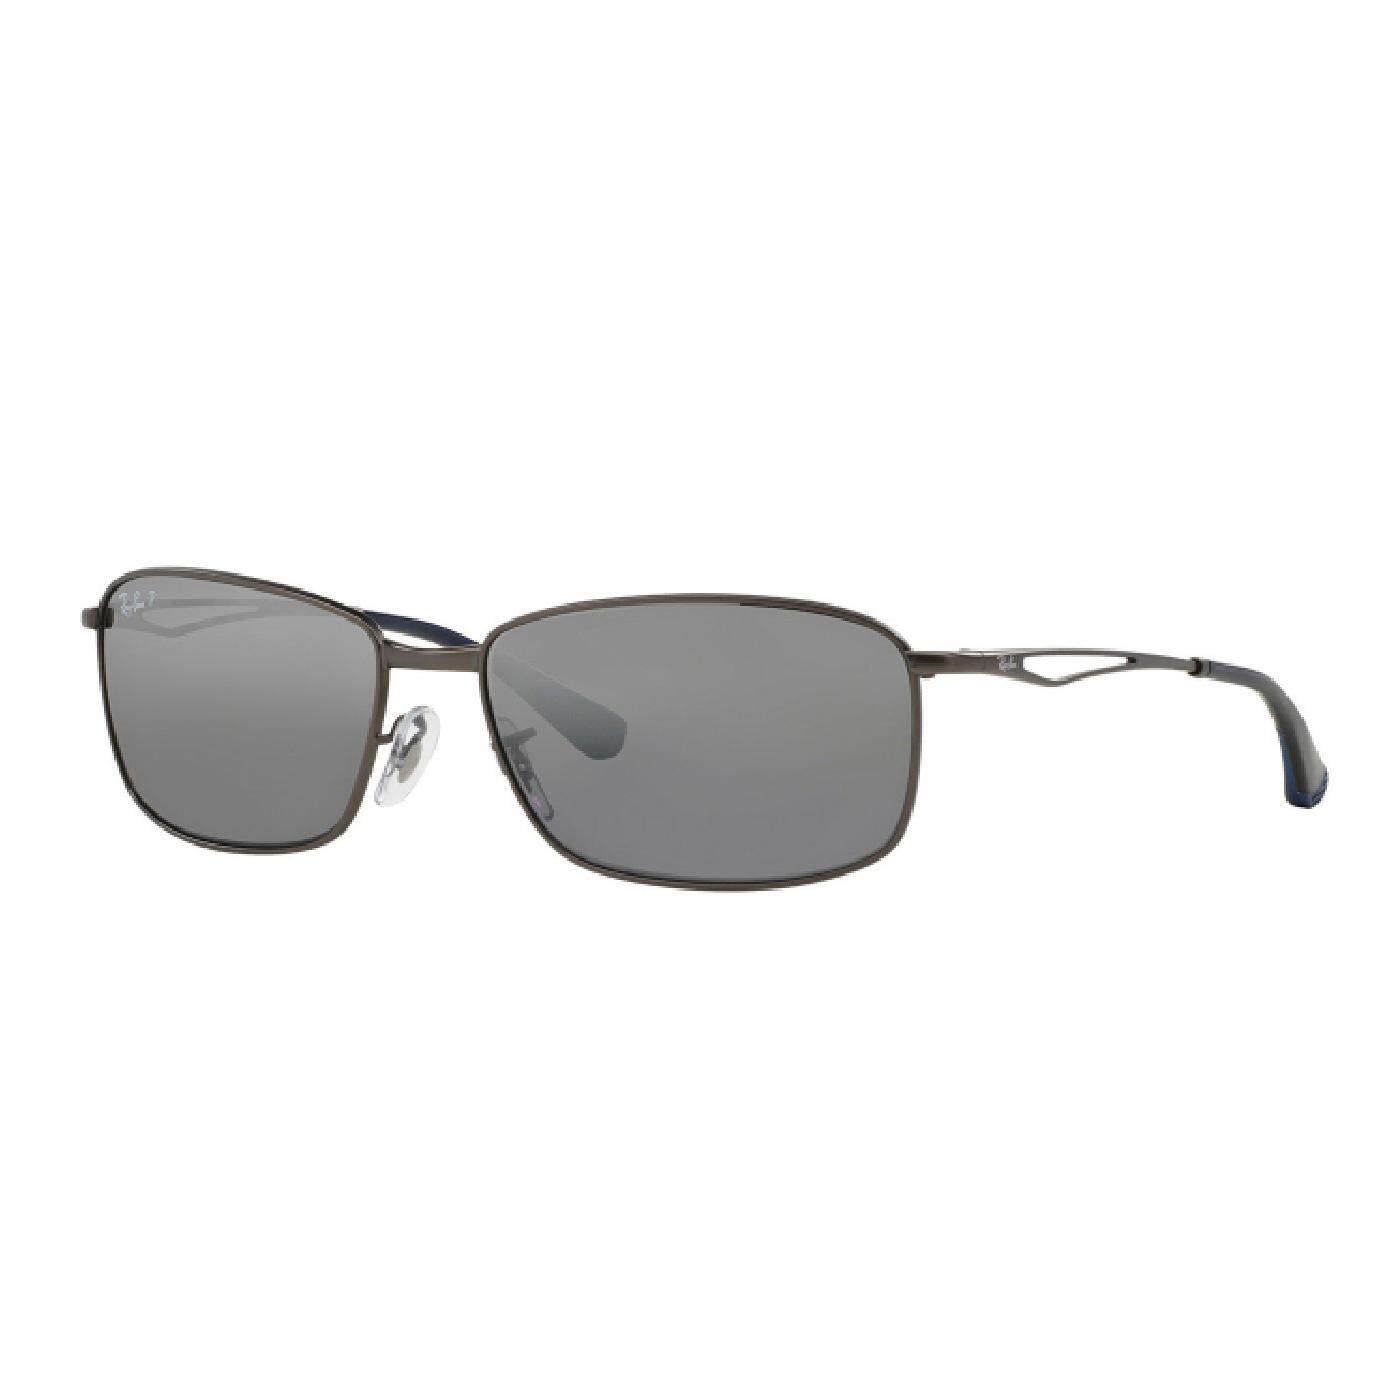 Ray-Ban RB3501-029 82 Authentic Sunglasses , Grey 7e05776f05a2